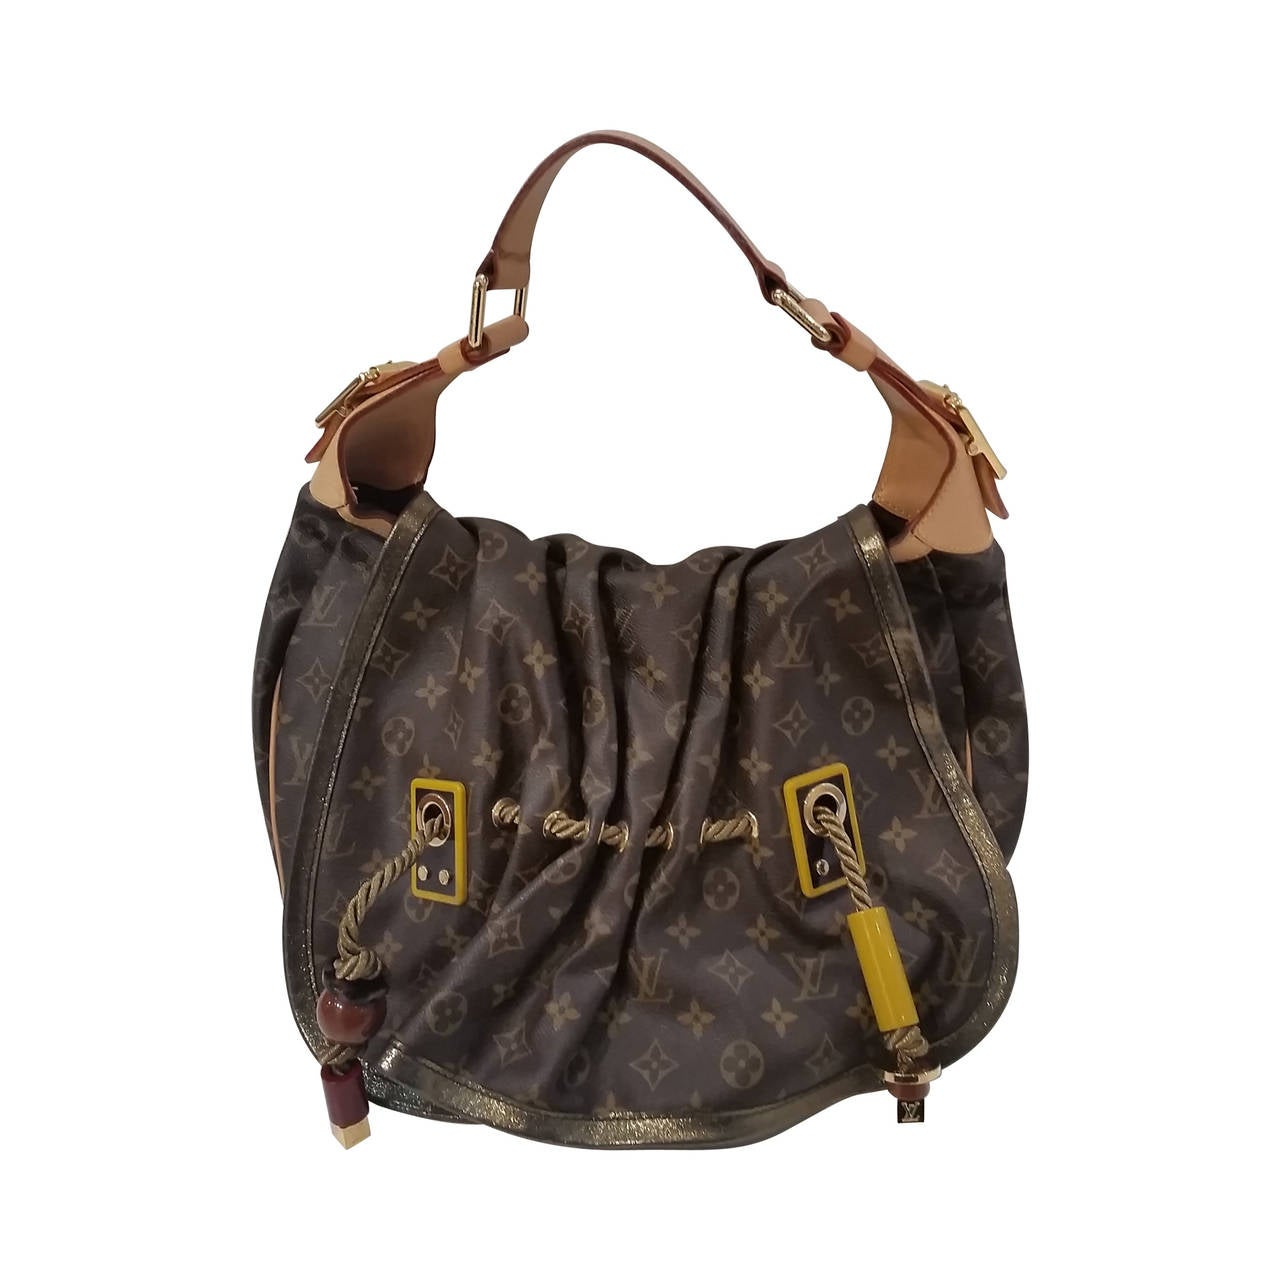 2009 Louis Vuitton Monogram Kalahari bag